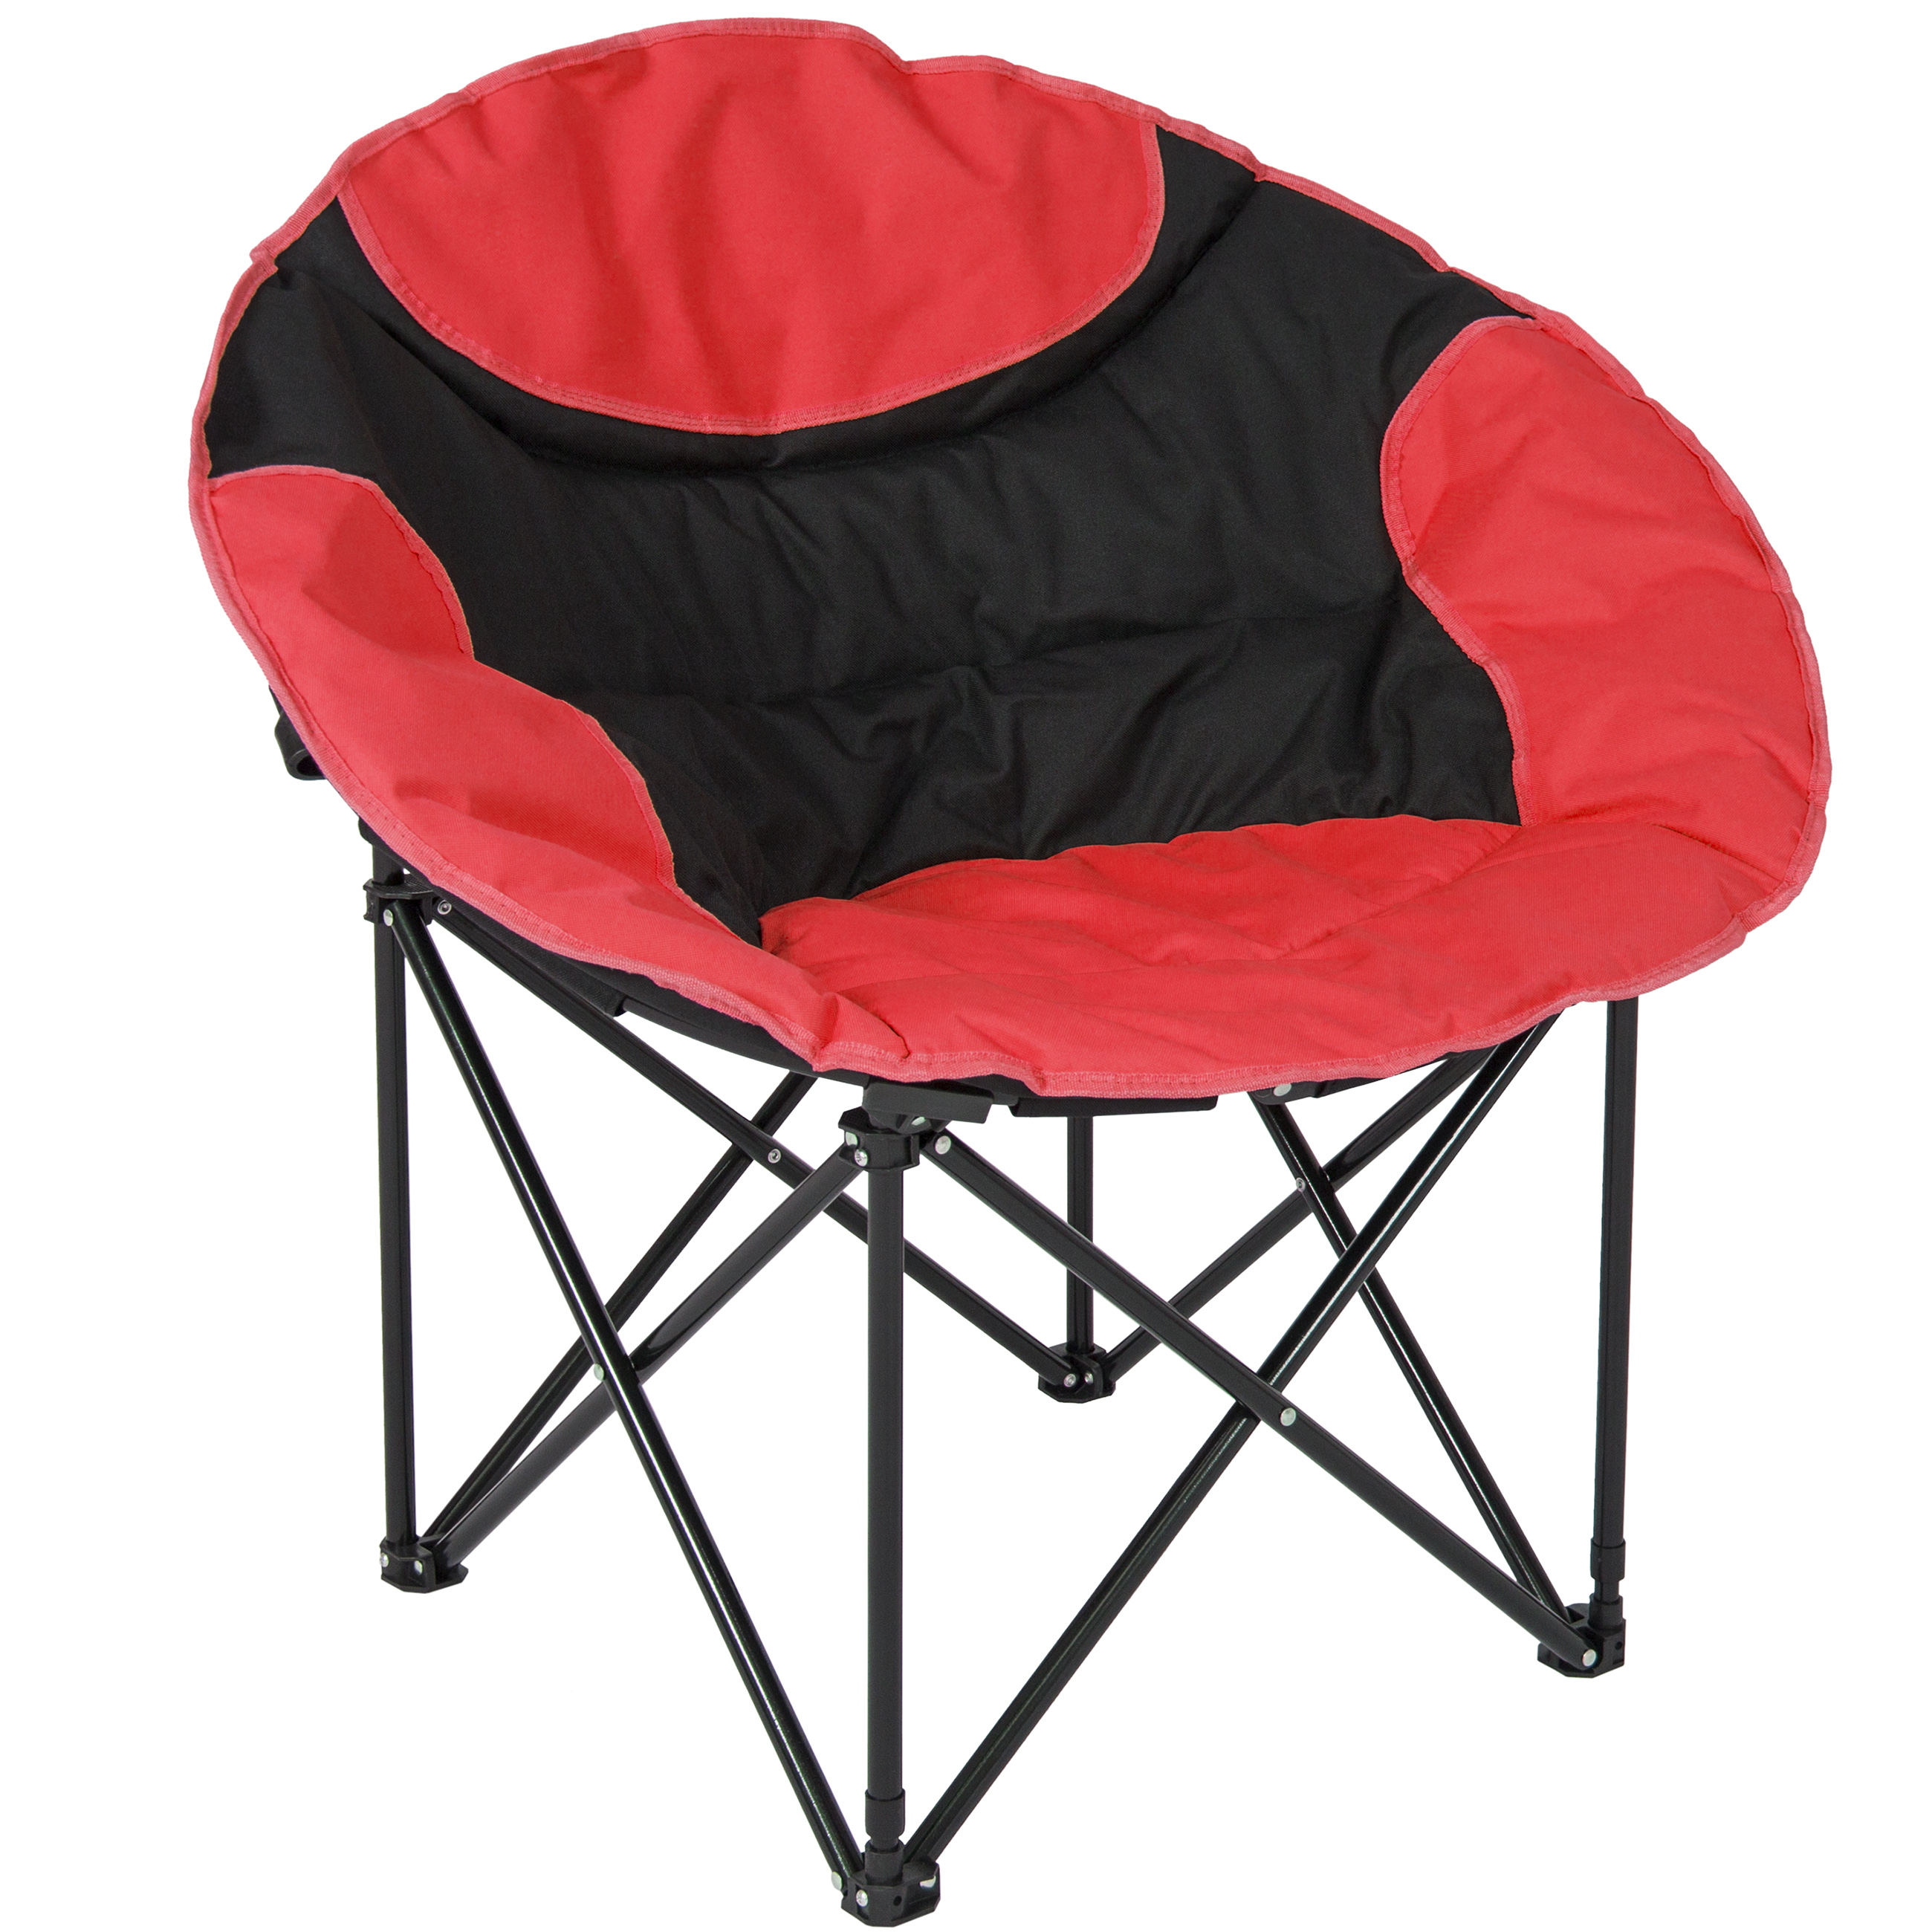 folding bag chair wood kids table and chairs best choice products outdoor foldable lightweight camping sports w large pocket carrying red walmart com